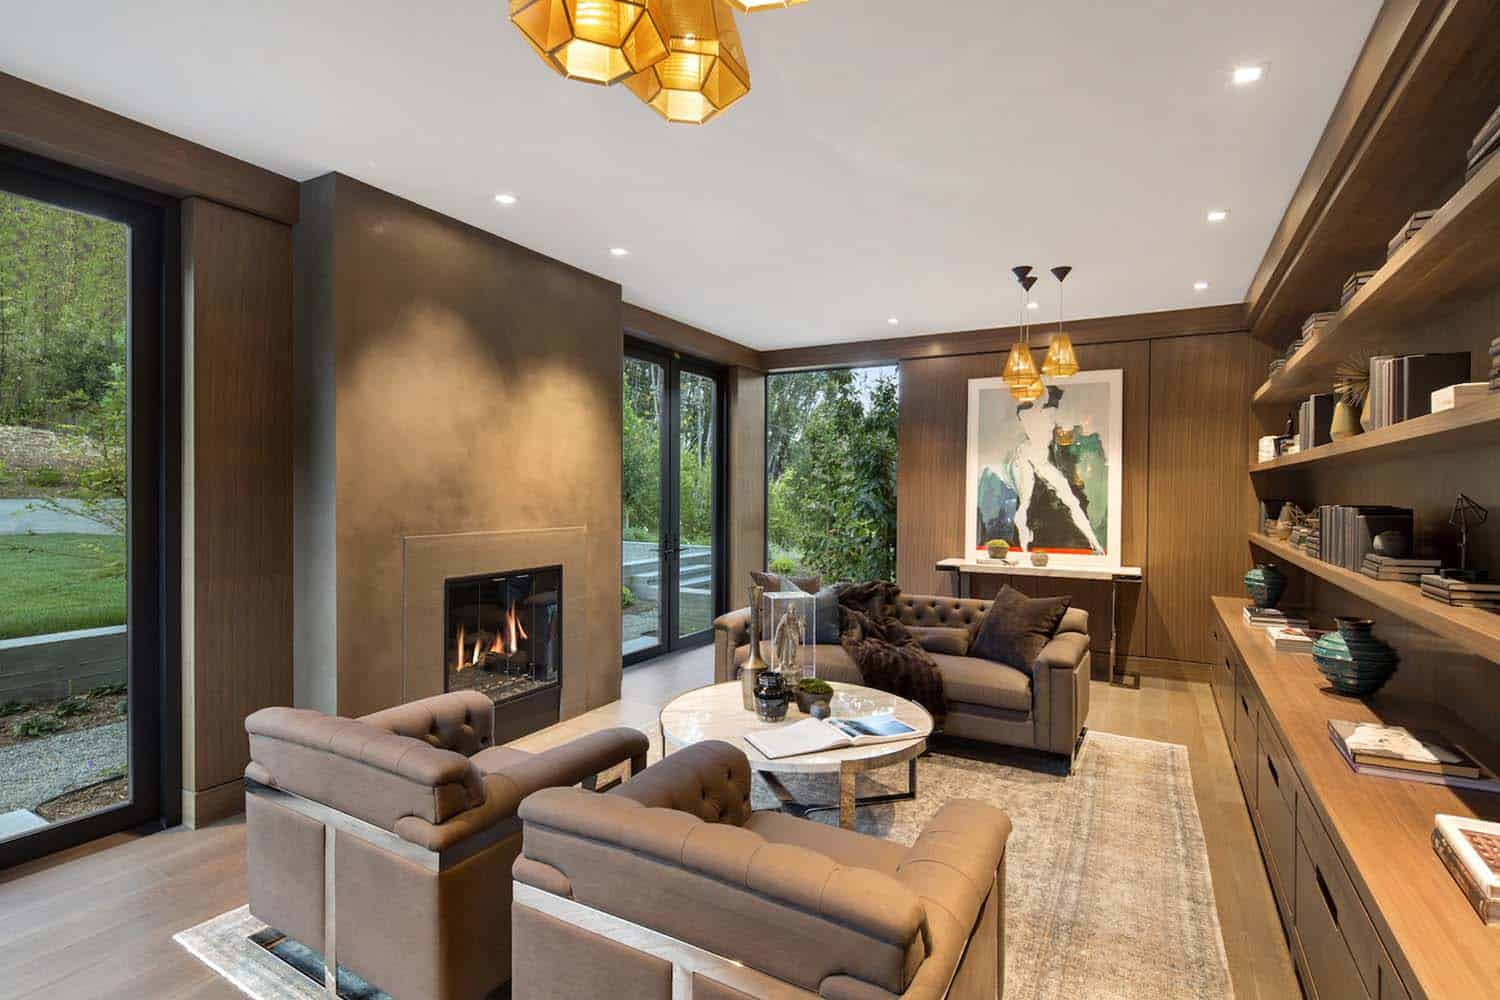 Contemporary Home Design-Butler Armsden Architects-09-1 Kindesign